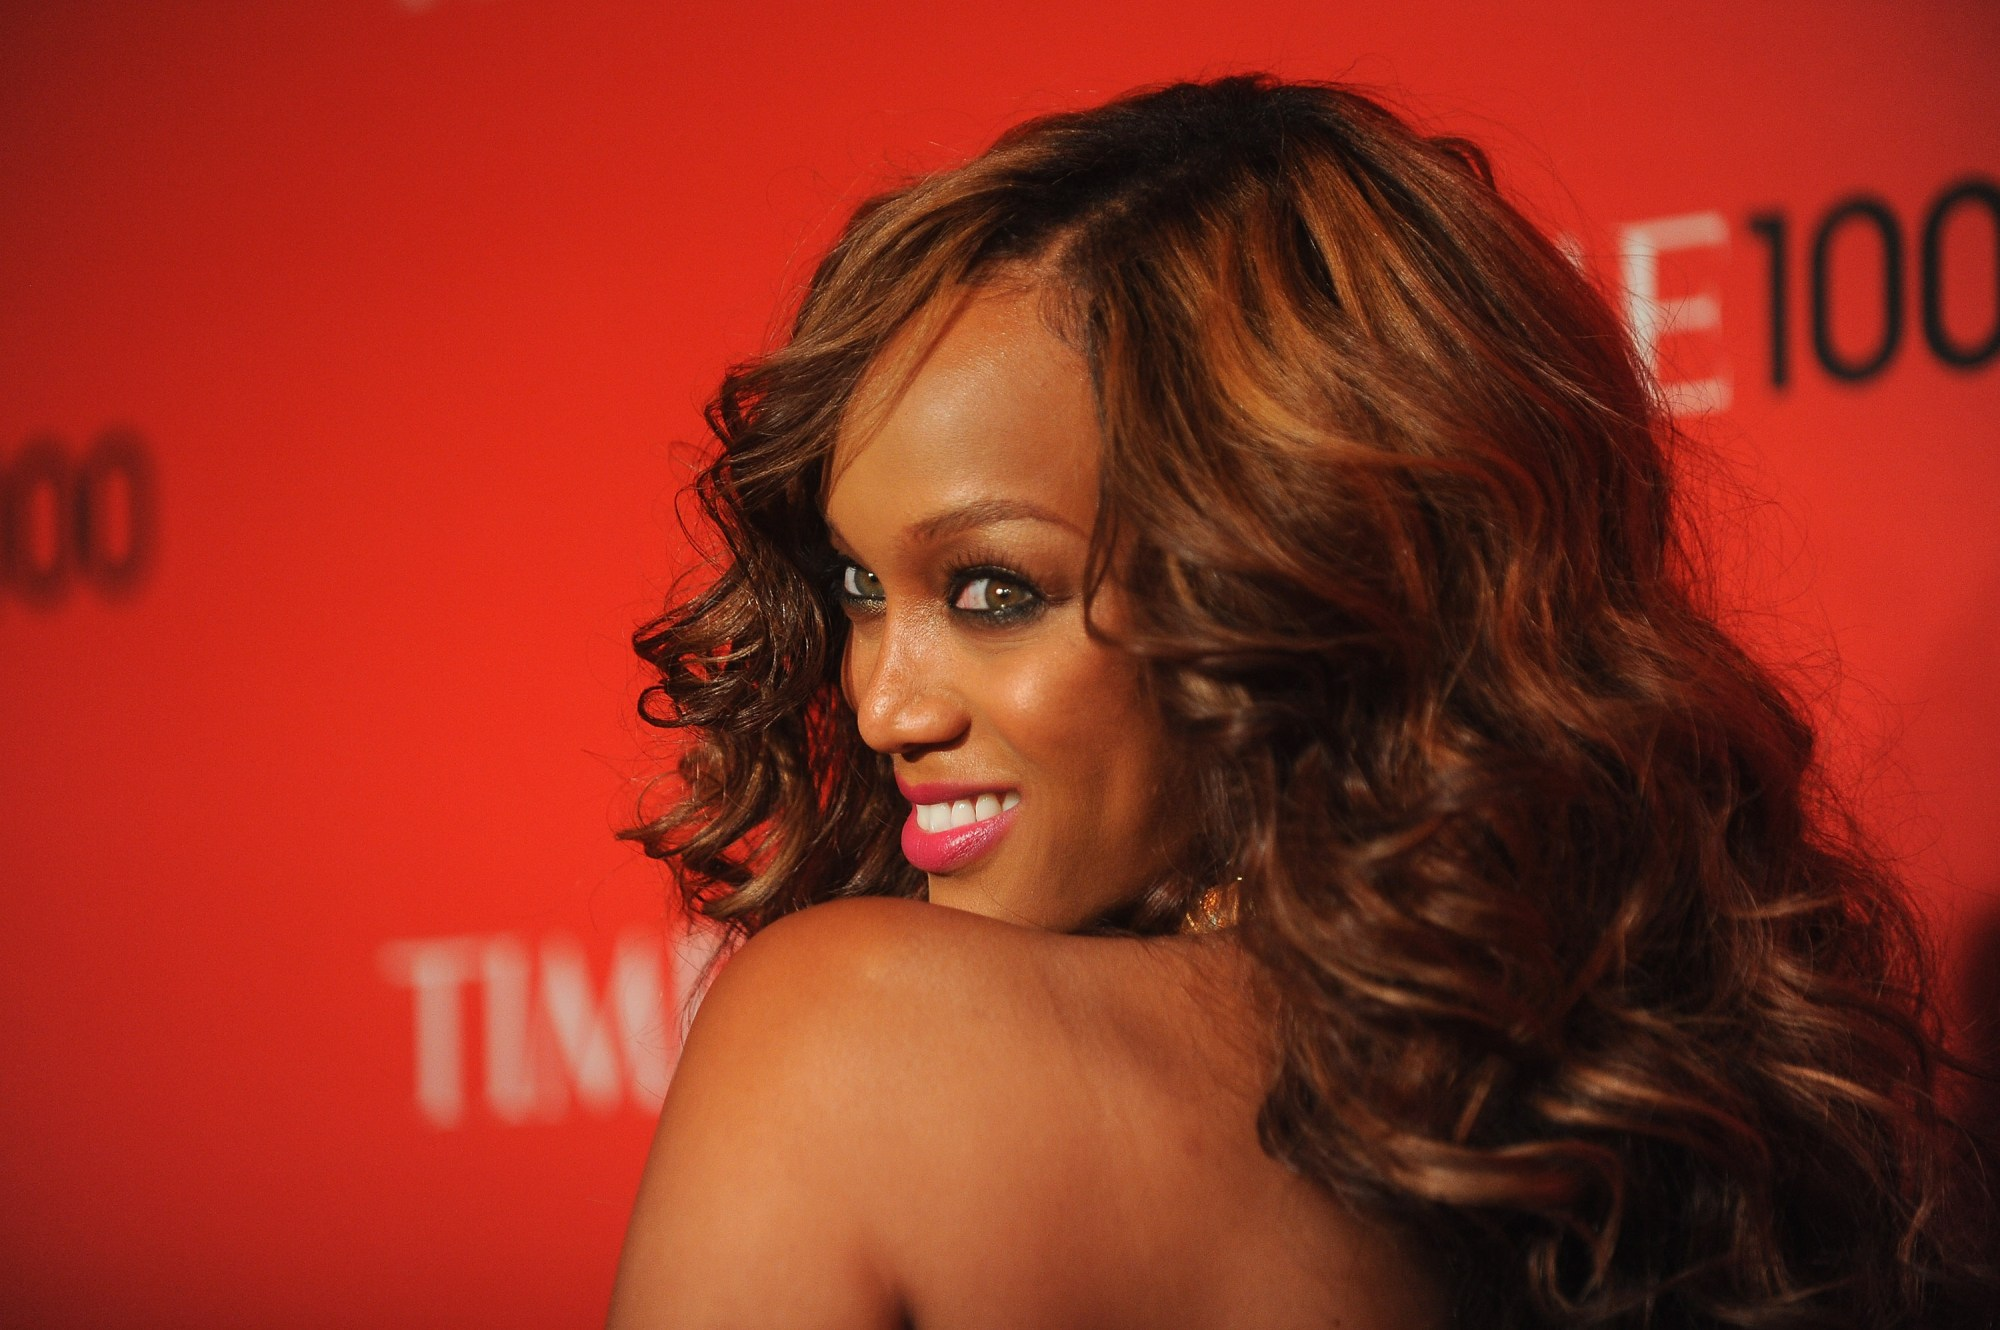 Tyra Banks attends the TIME 100 Gala on April 24, 2012, in New York City. (Fernando Leon/Getty Images for TIME)